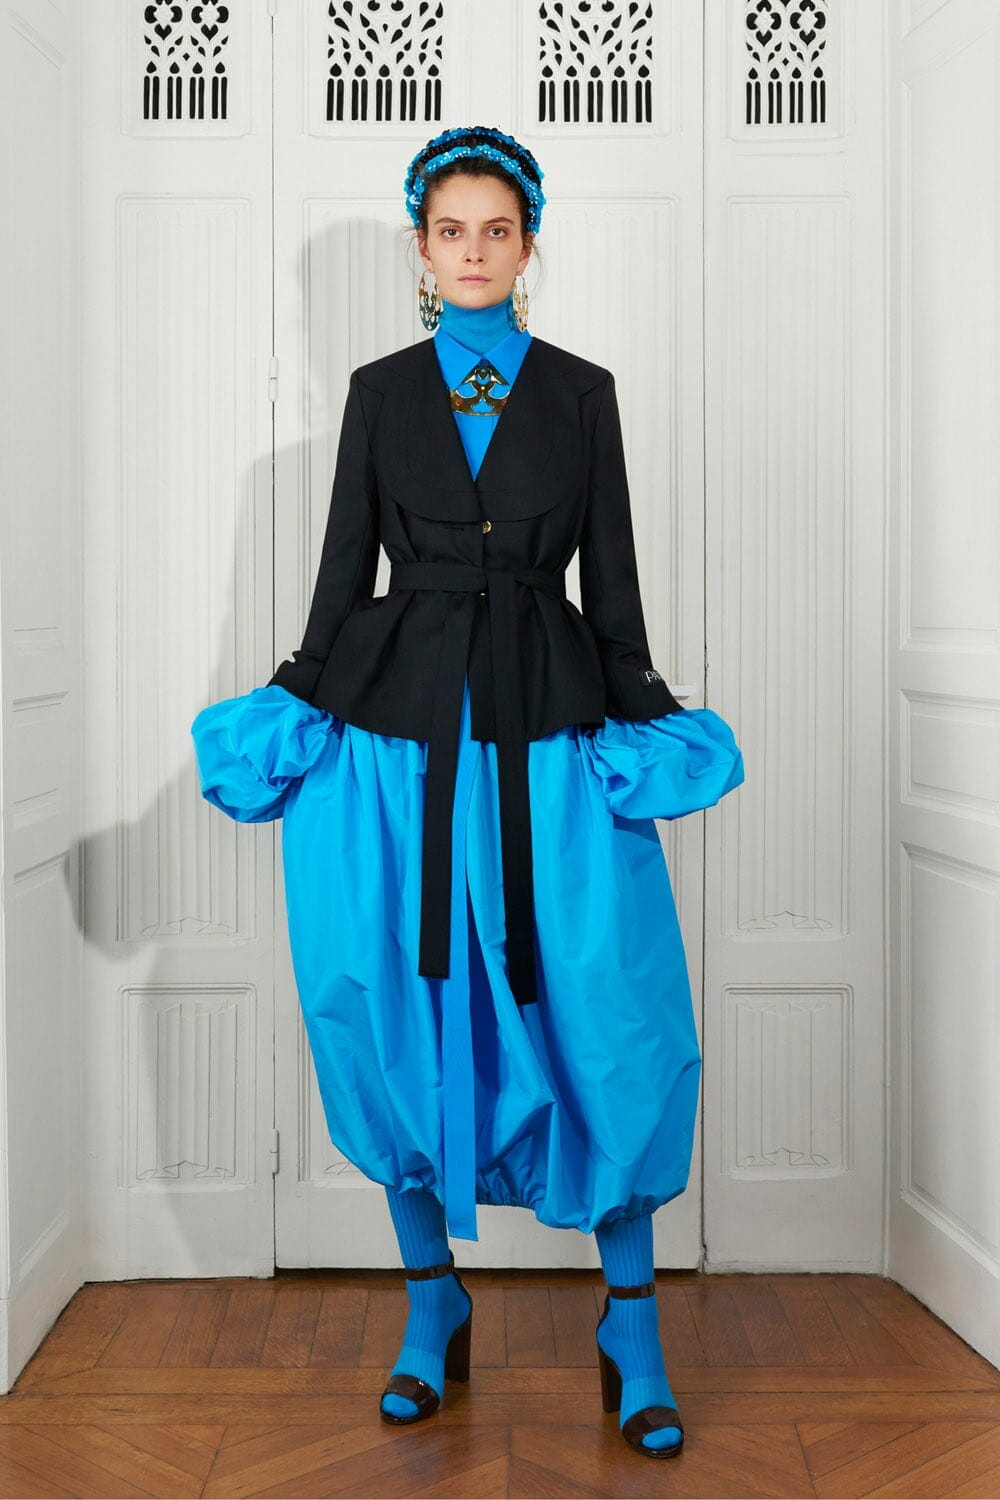 Patou Fall Winter 2021-2022 Paris. RUNWAY MAGAZINE ® Collections. RUNWAY NOW / RUNWAY NEW